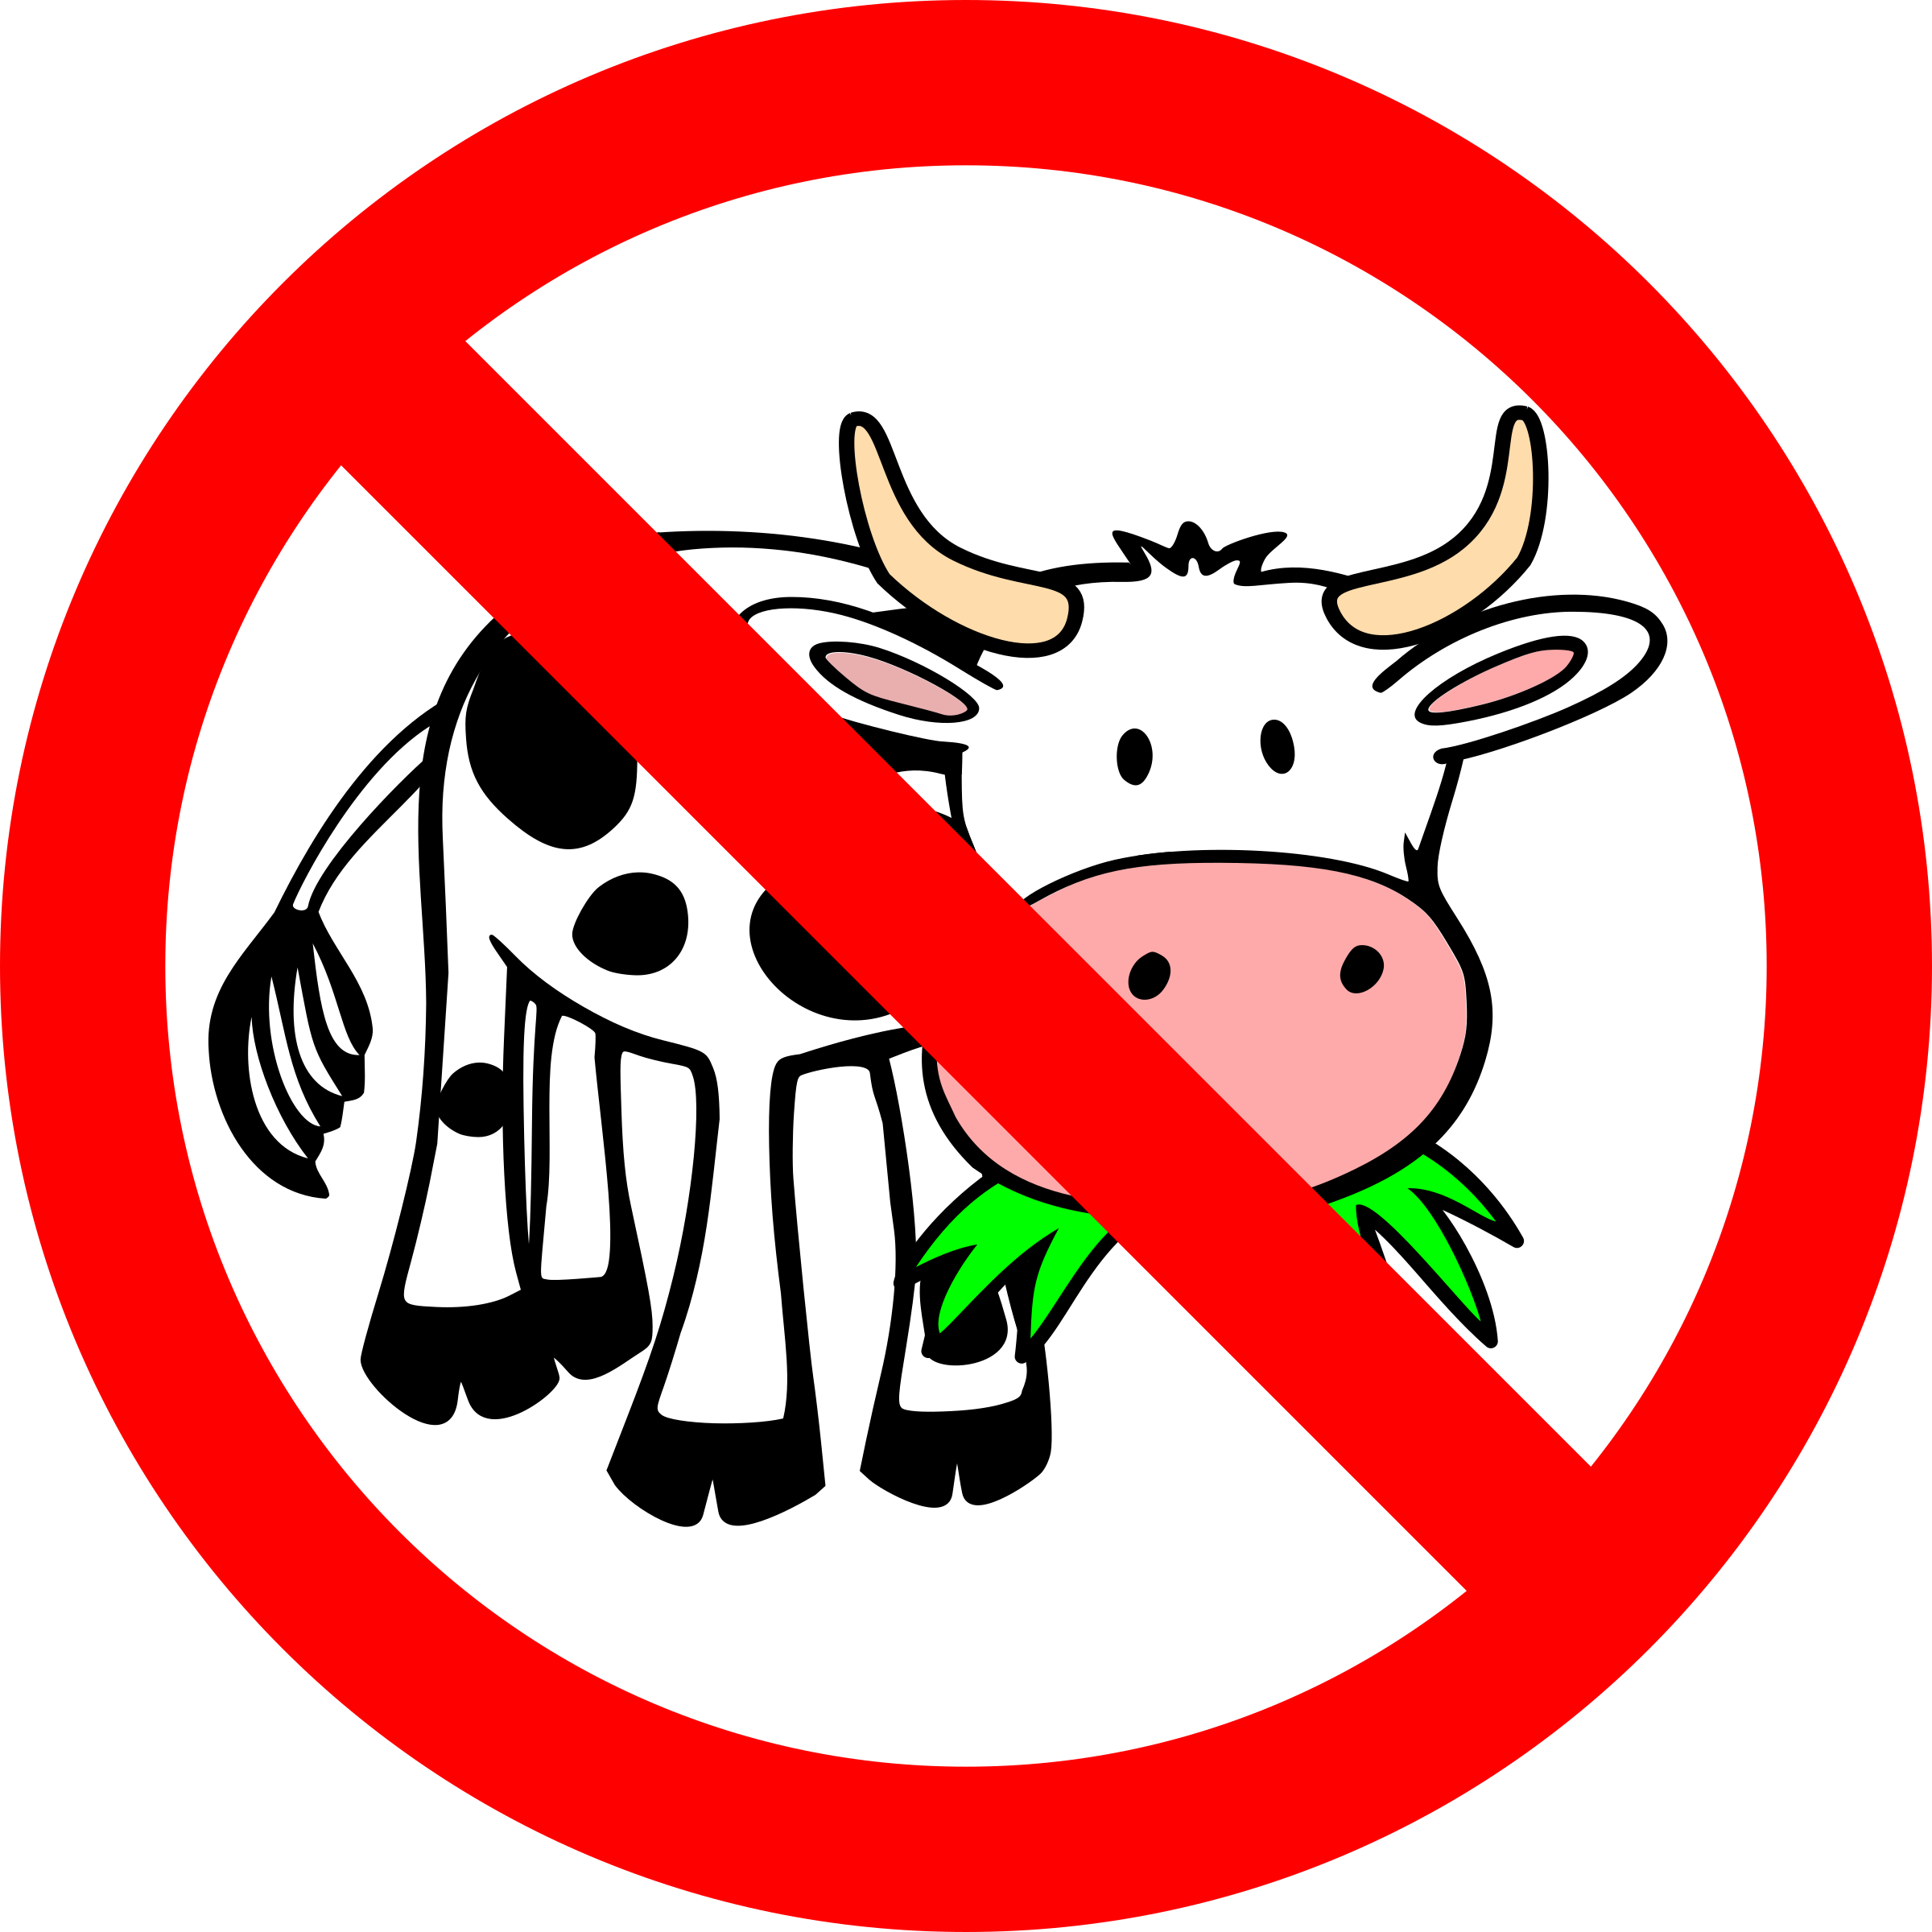 Banned book clipart image library library Banned Bull Icons PNG - Free PNG and Icons Downloads image library library